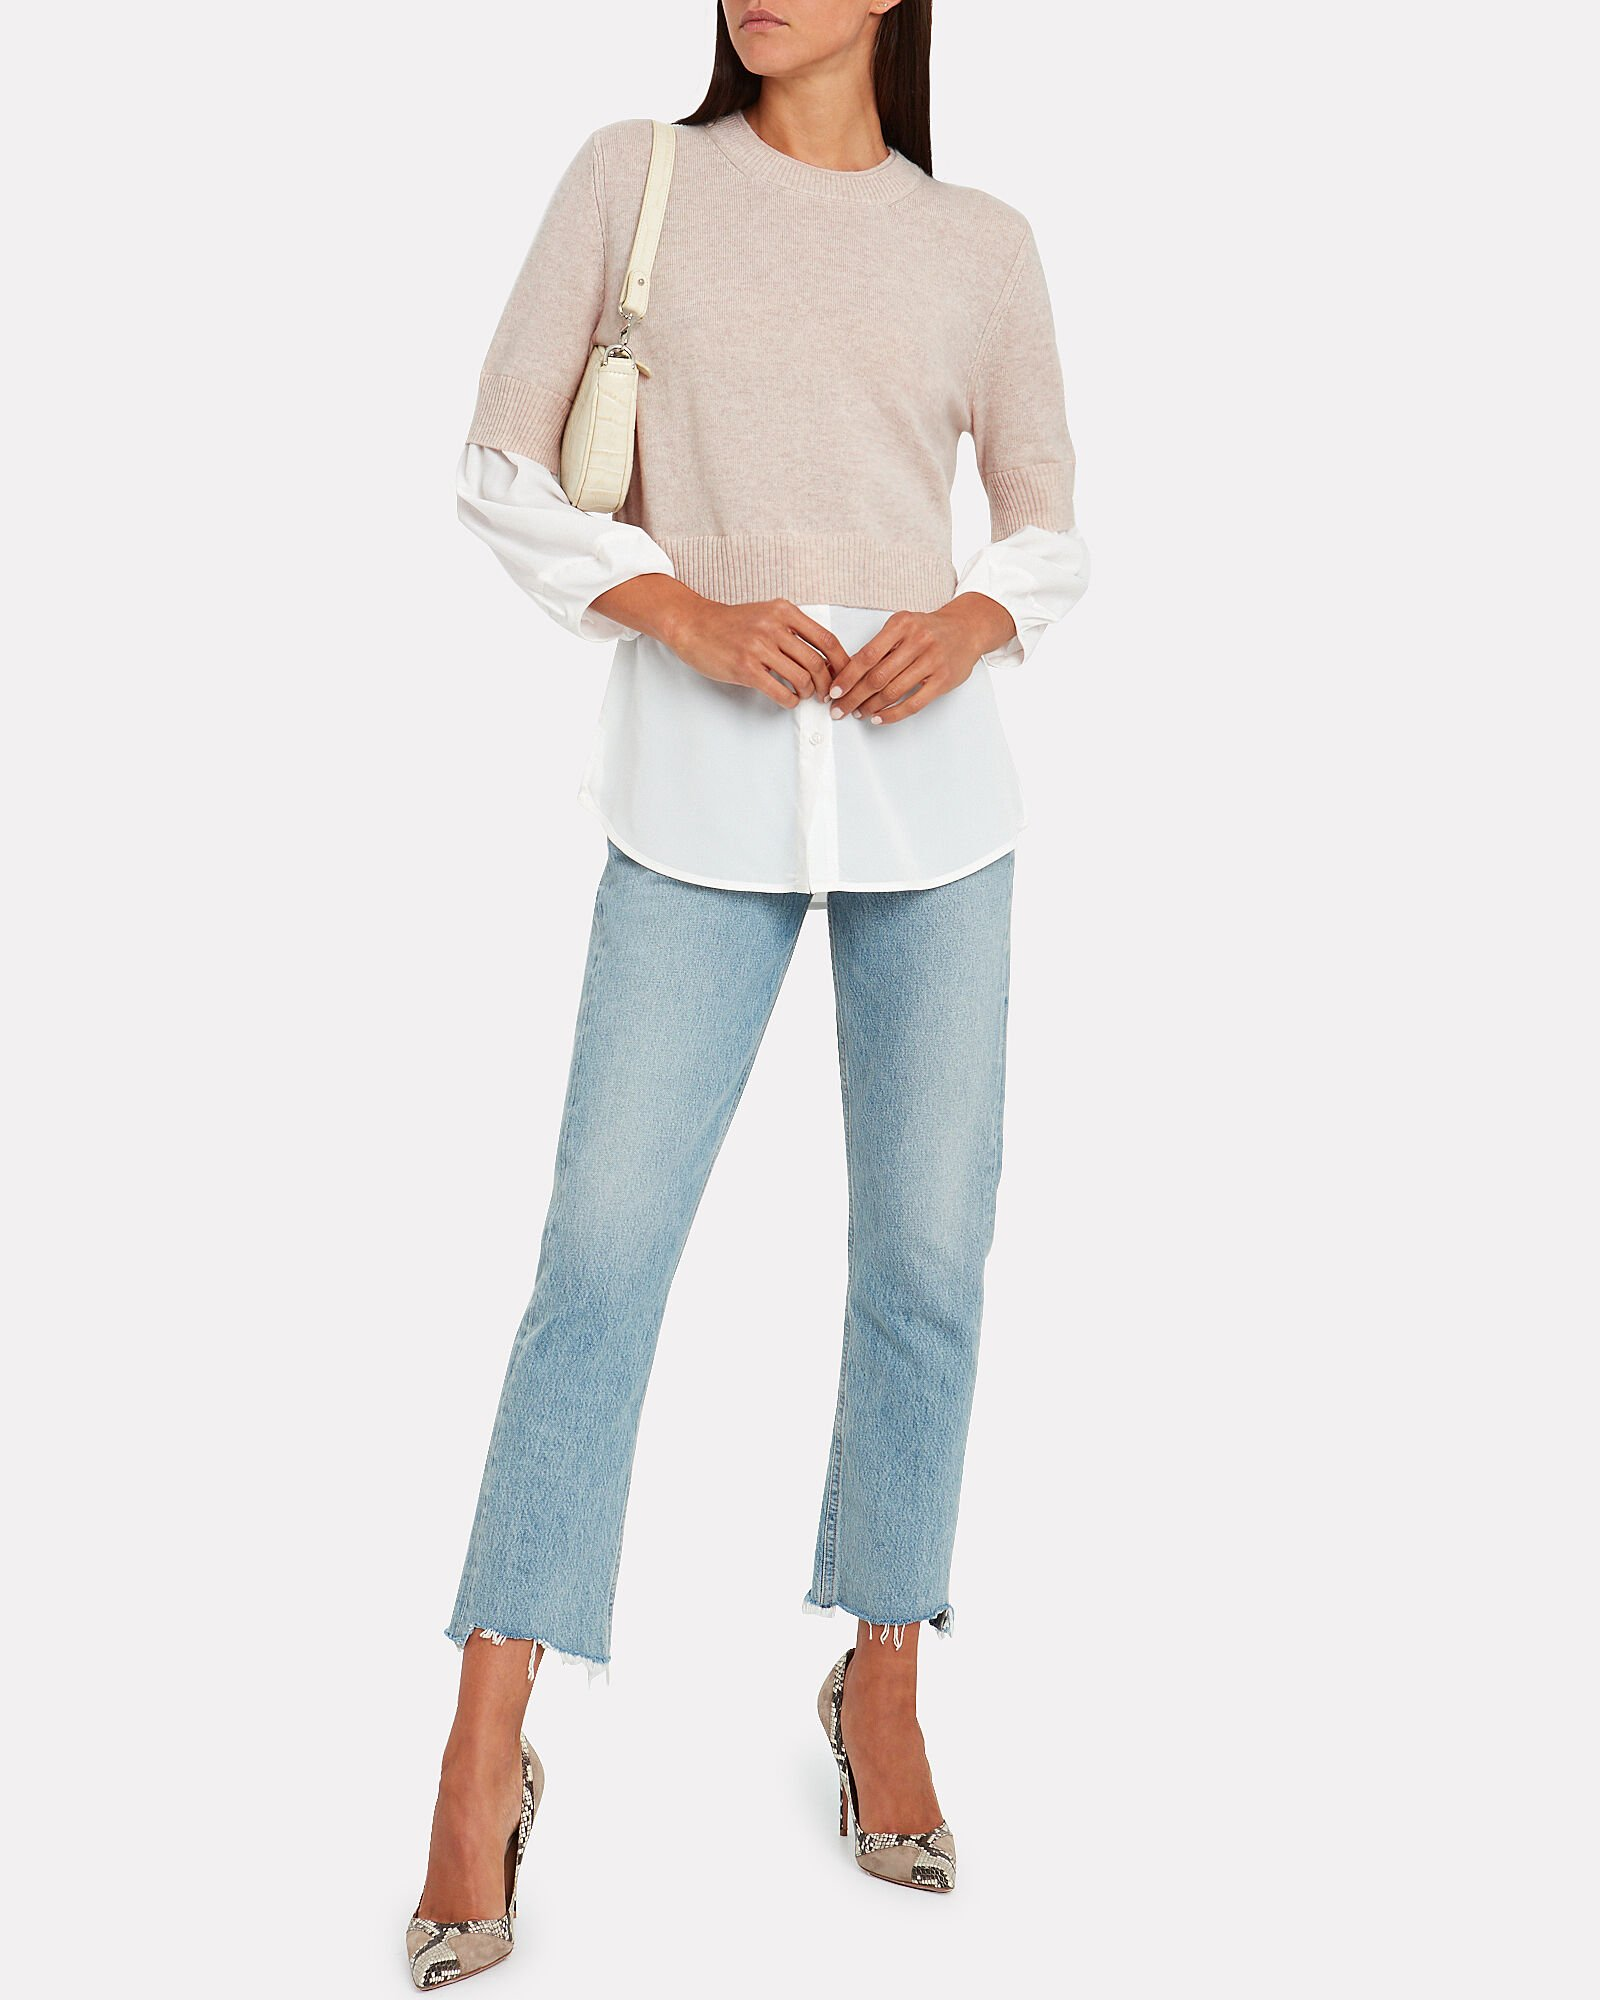 Ebella Layered Crewneck Sweater, BEIGE/WHITE, hi-res